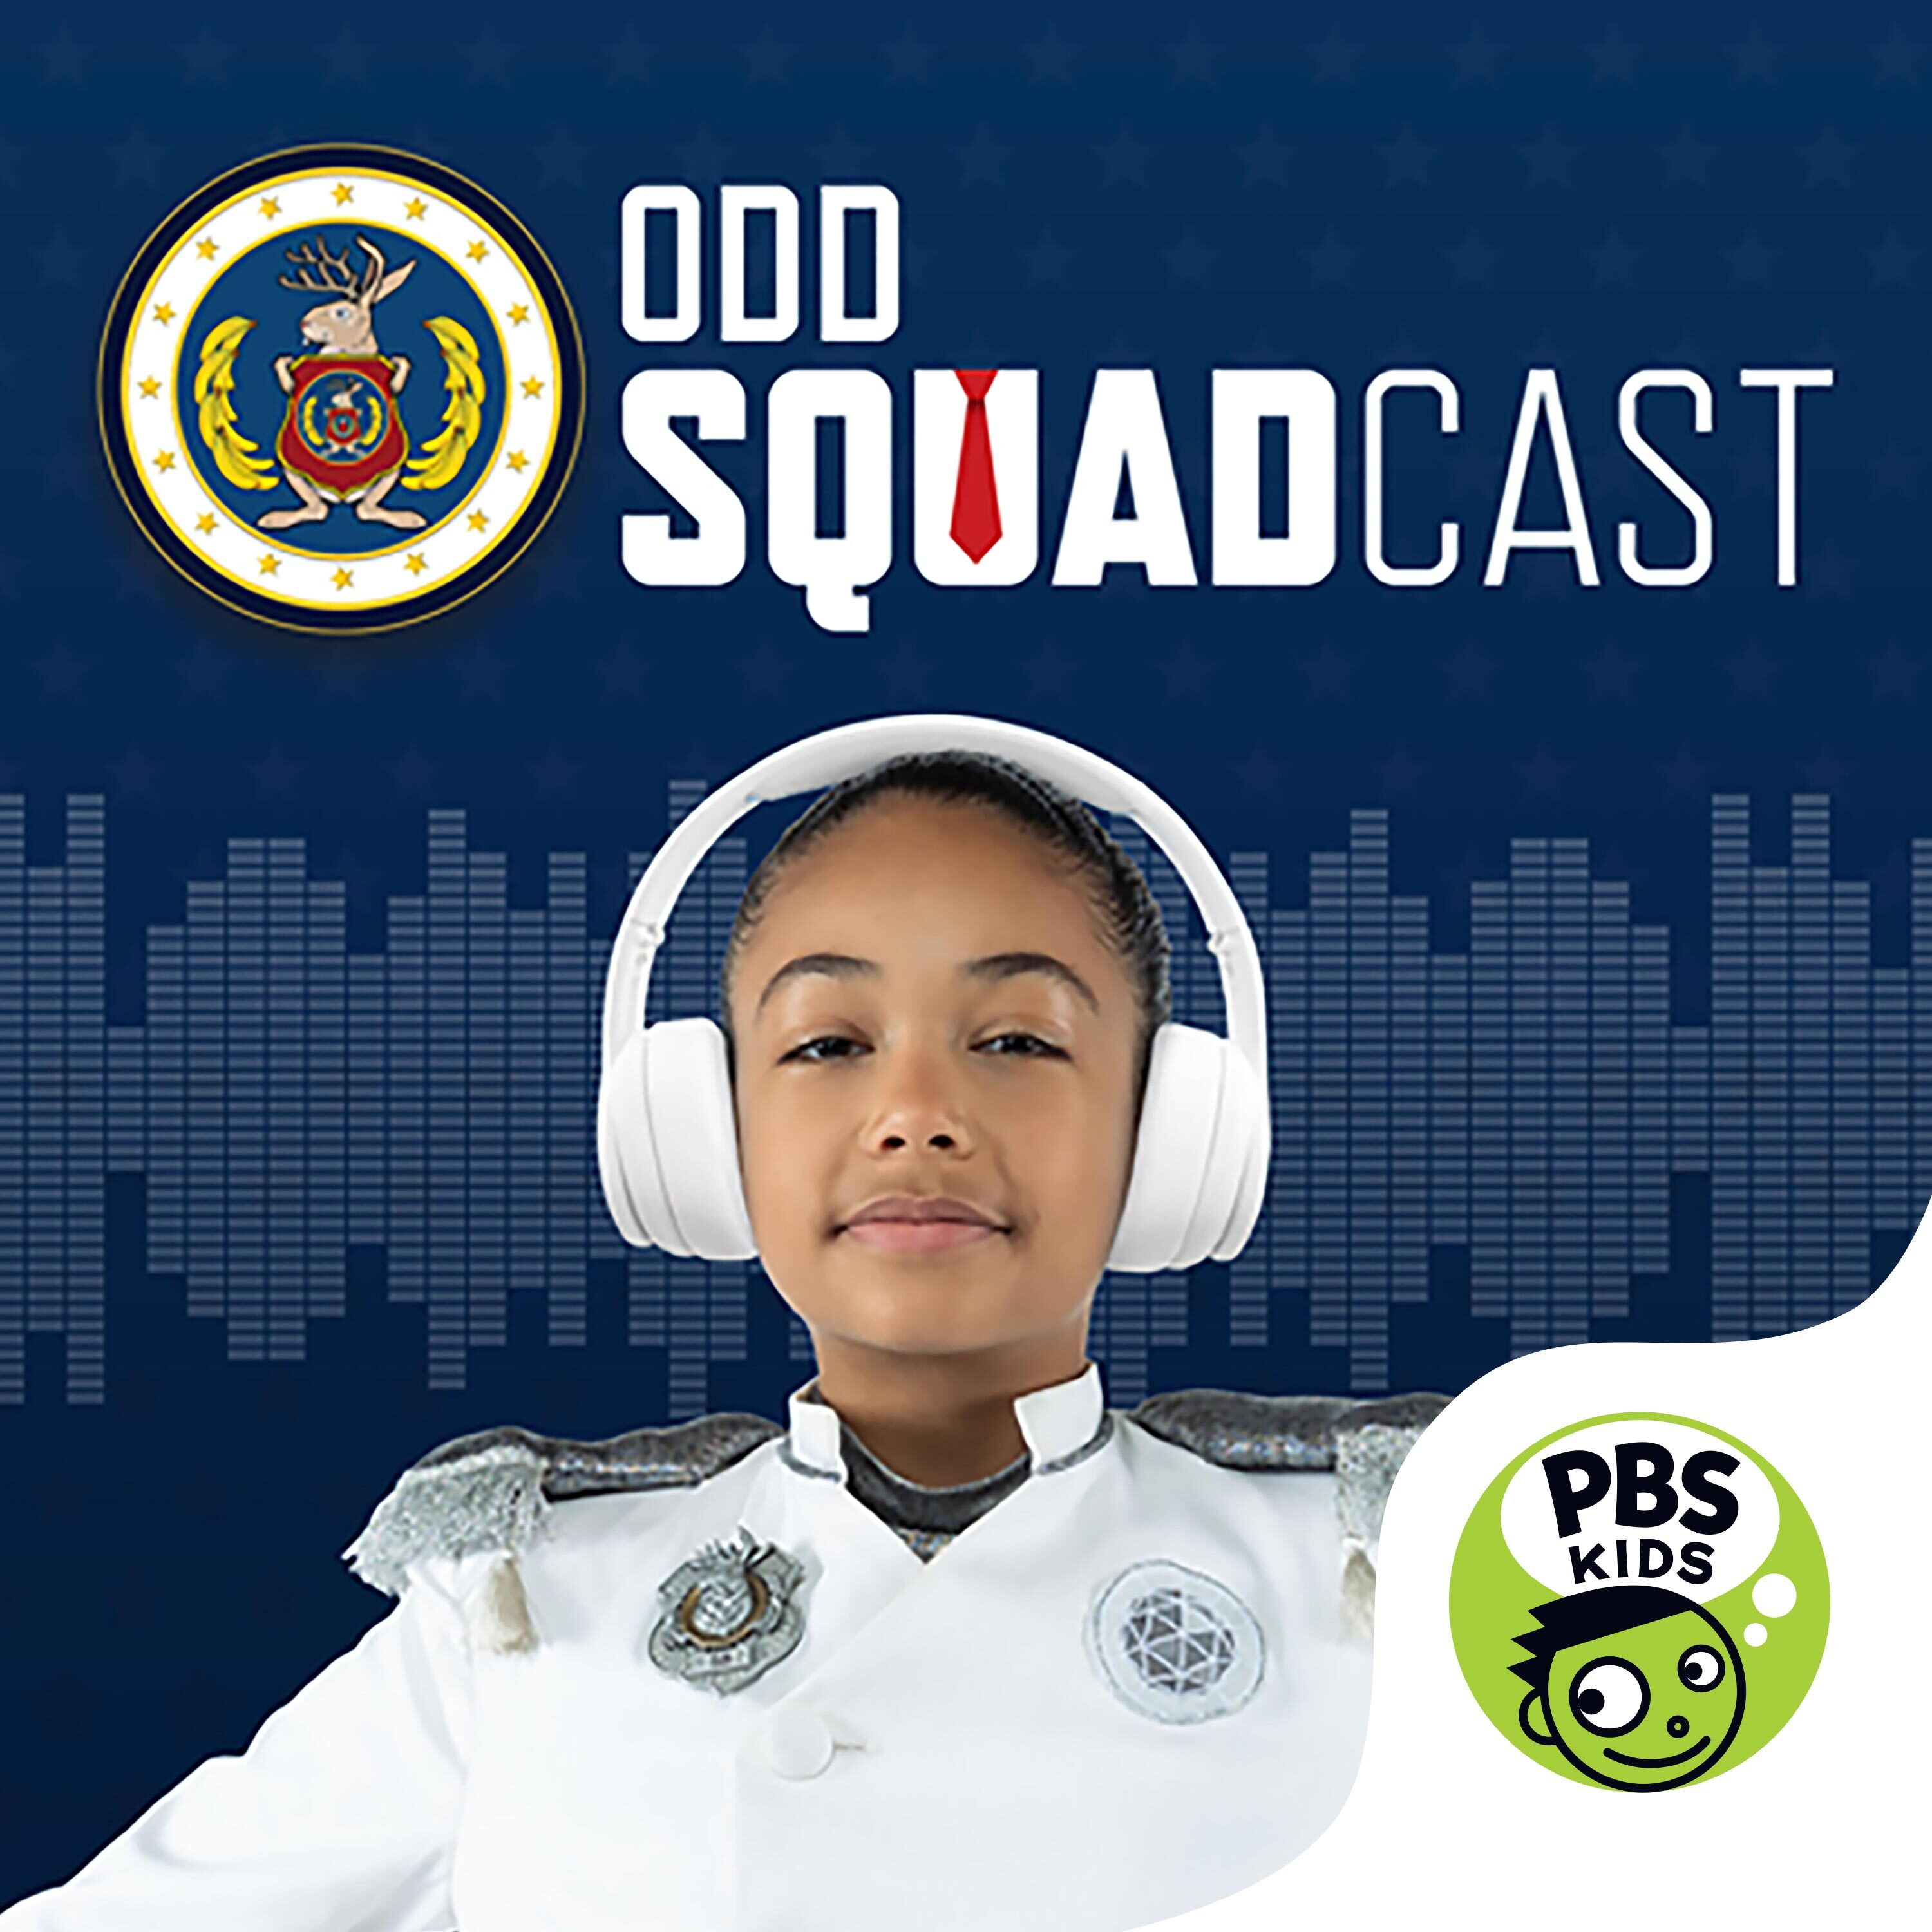 Podcast episode image for Introducing the Odd Squadcast!